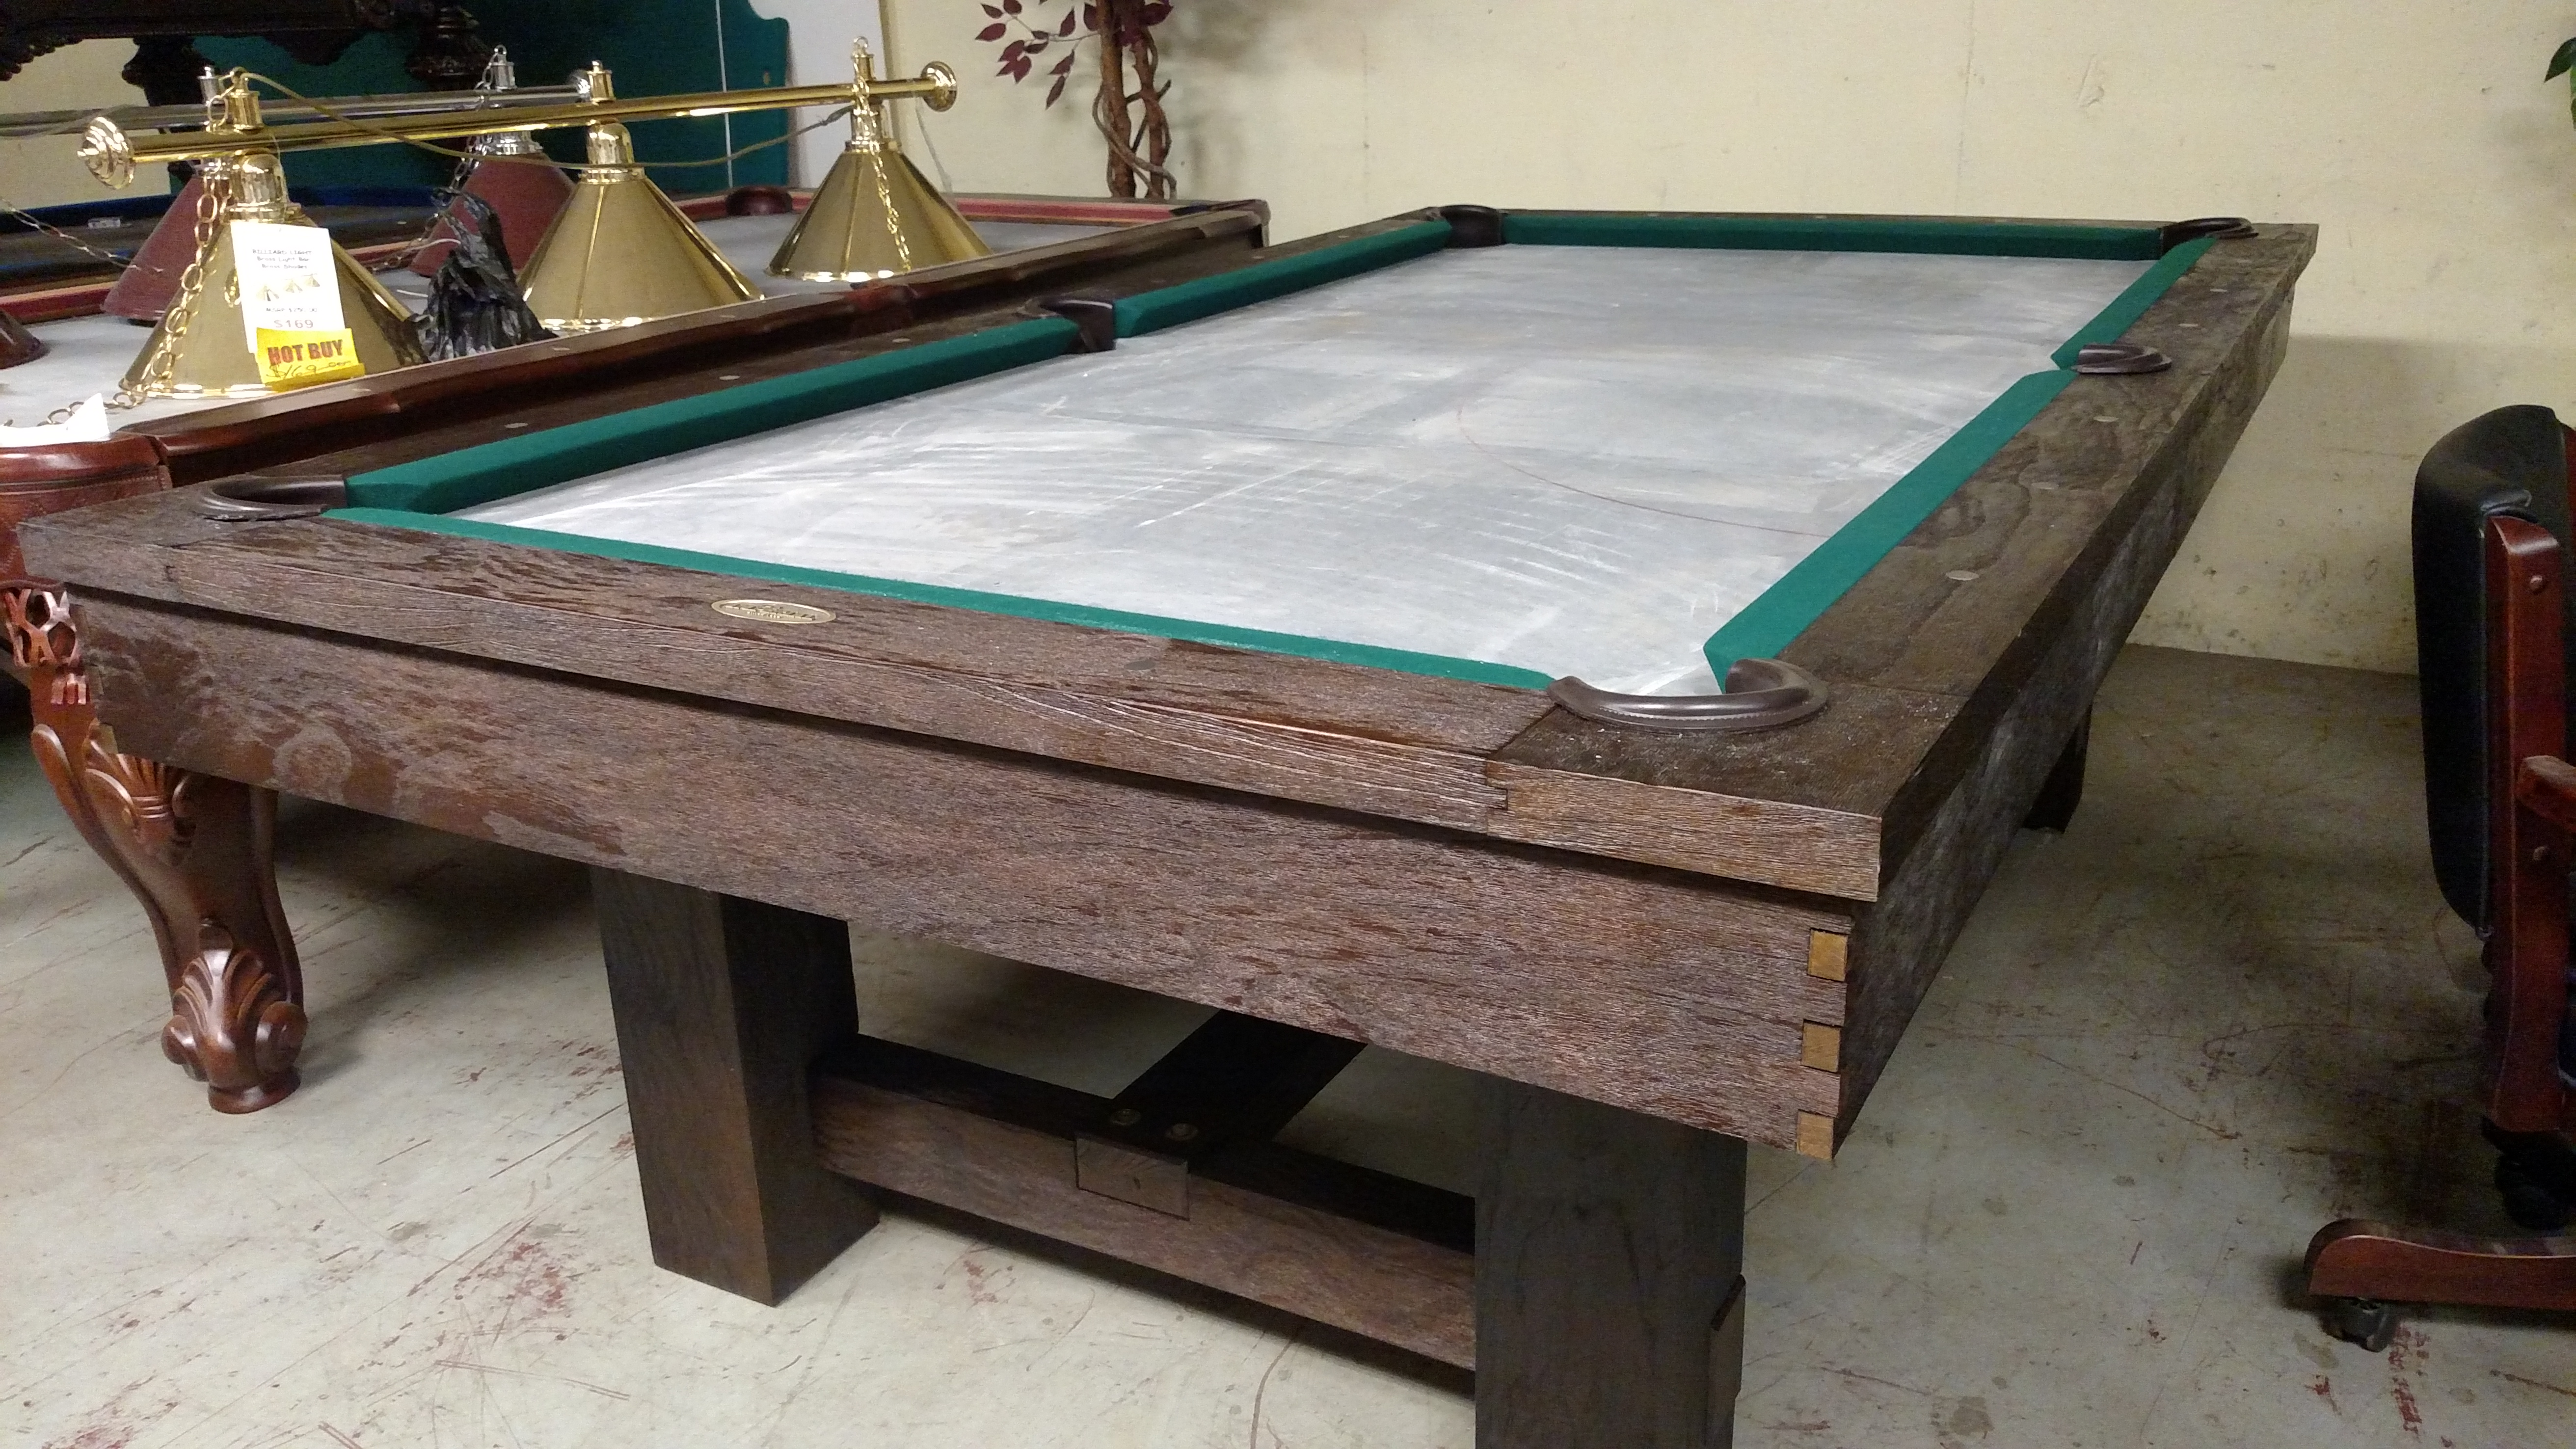 Imperialrustictable - Reno pool table